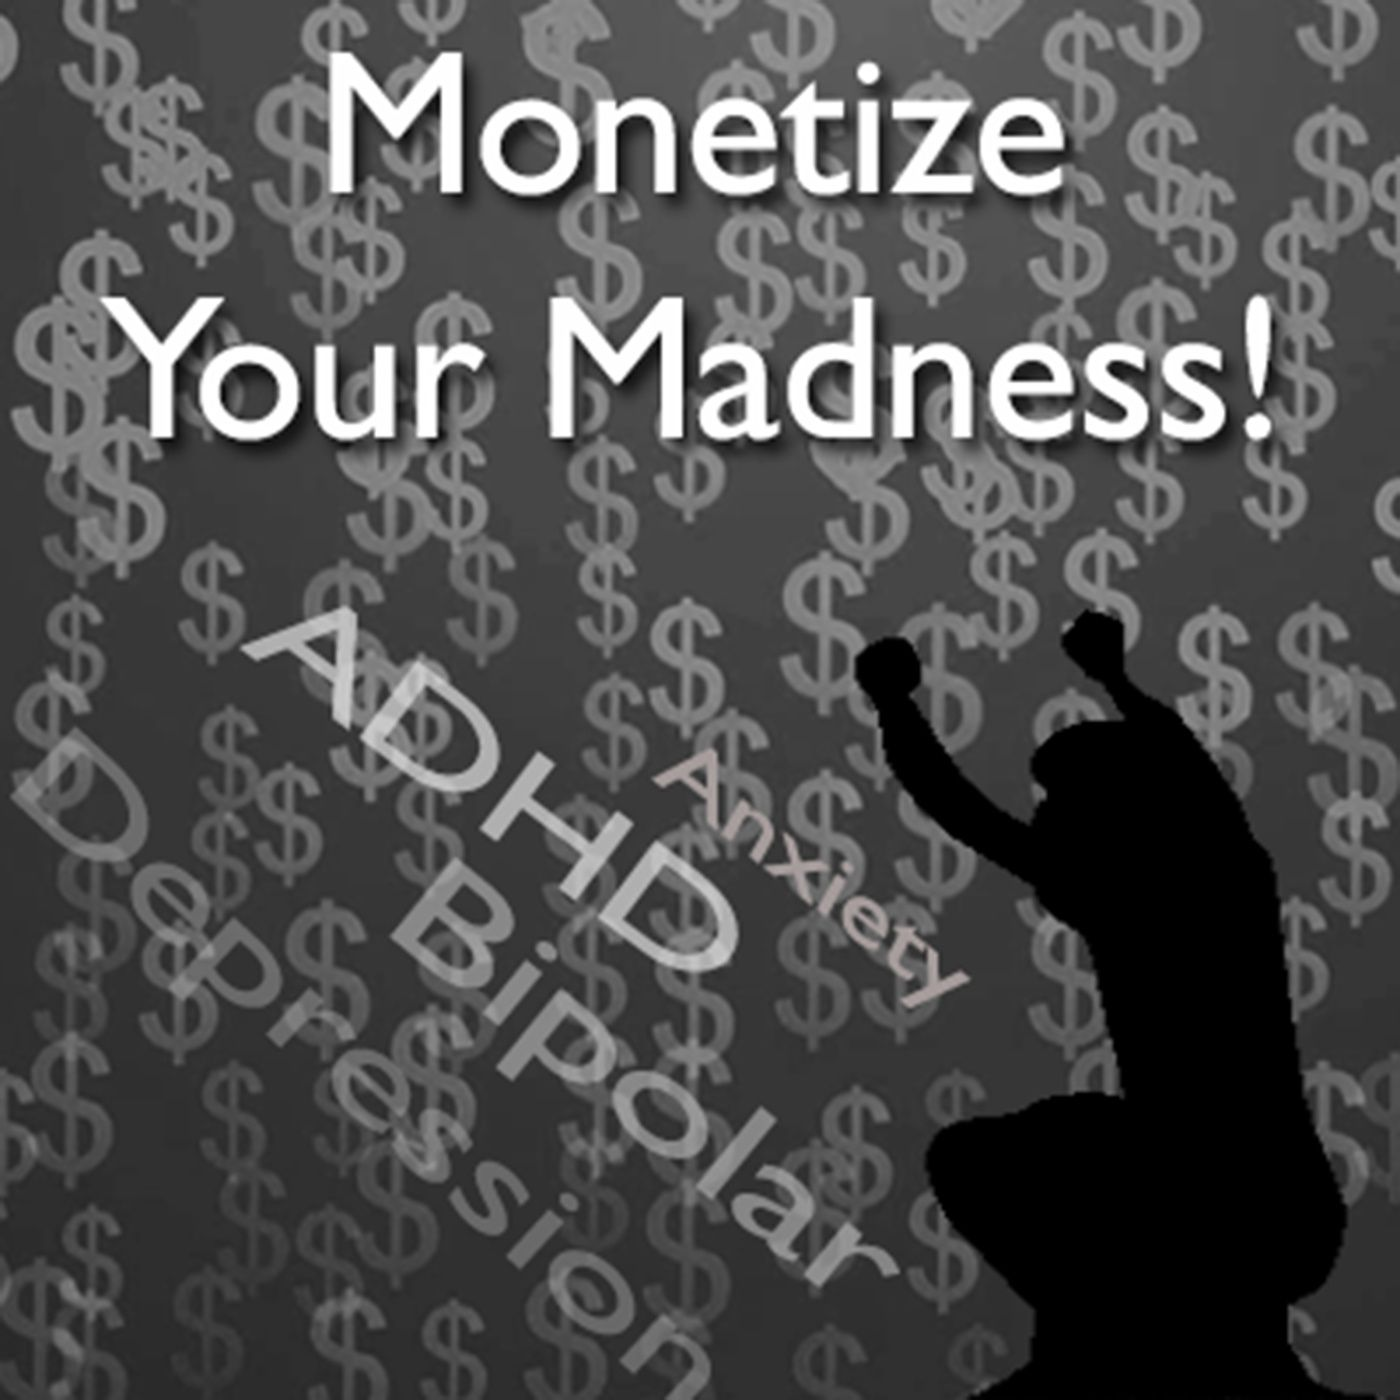 Monetize Your Madness